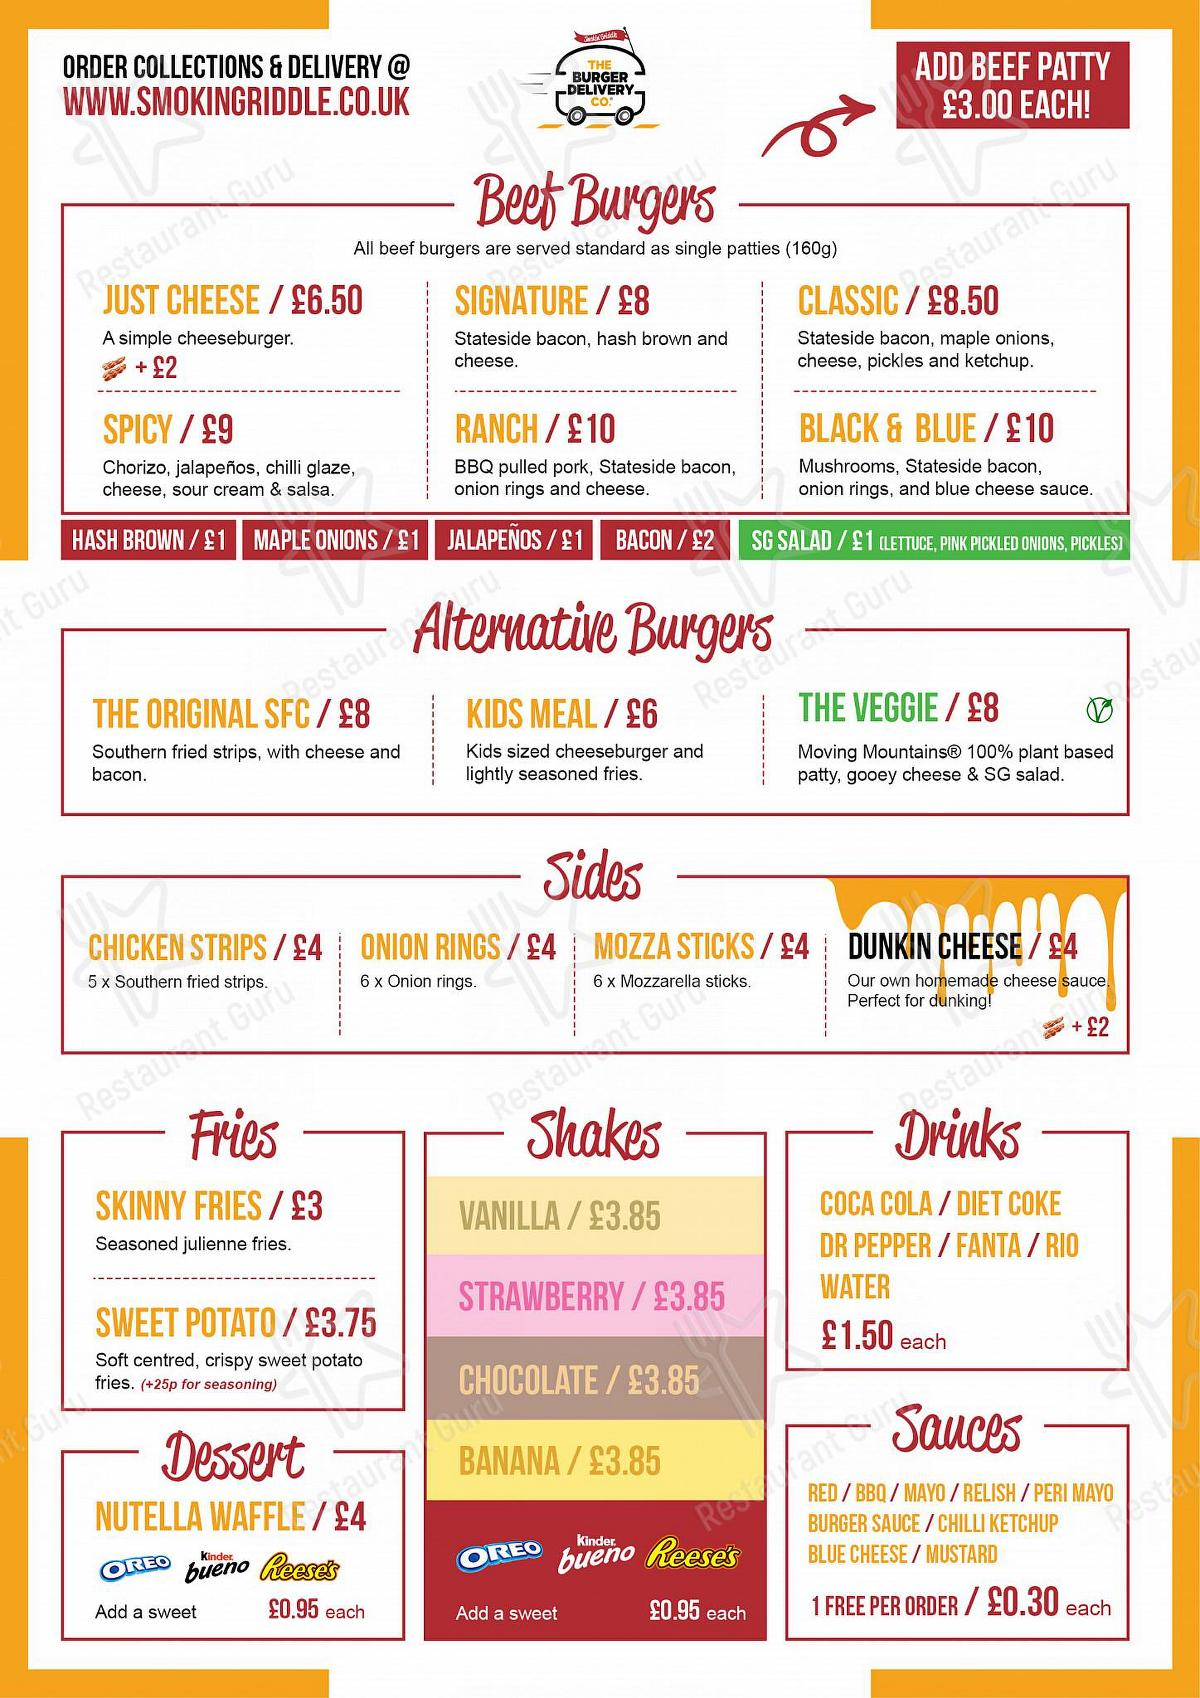 Smokin' Griddle menu - meals and drinks